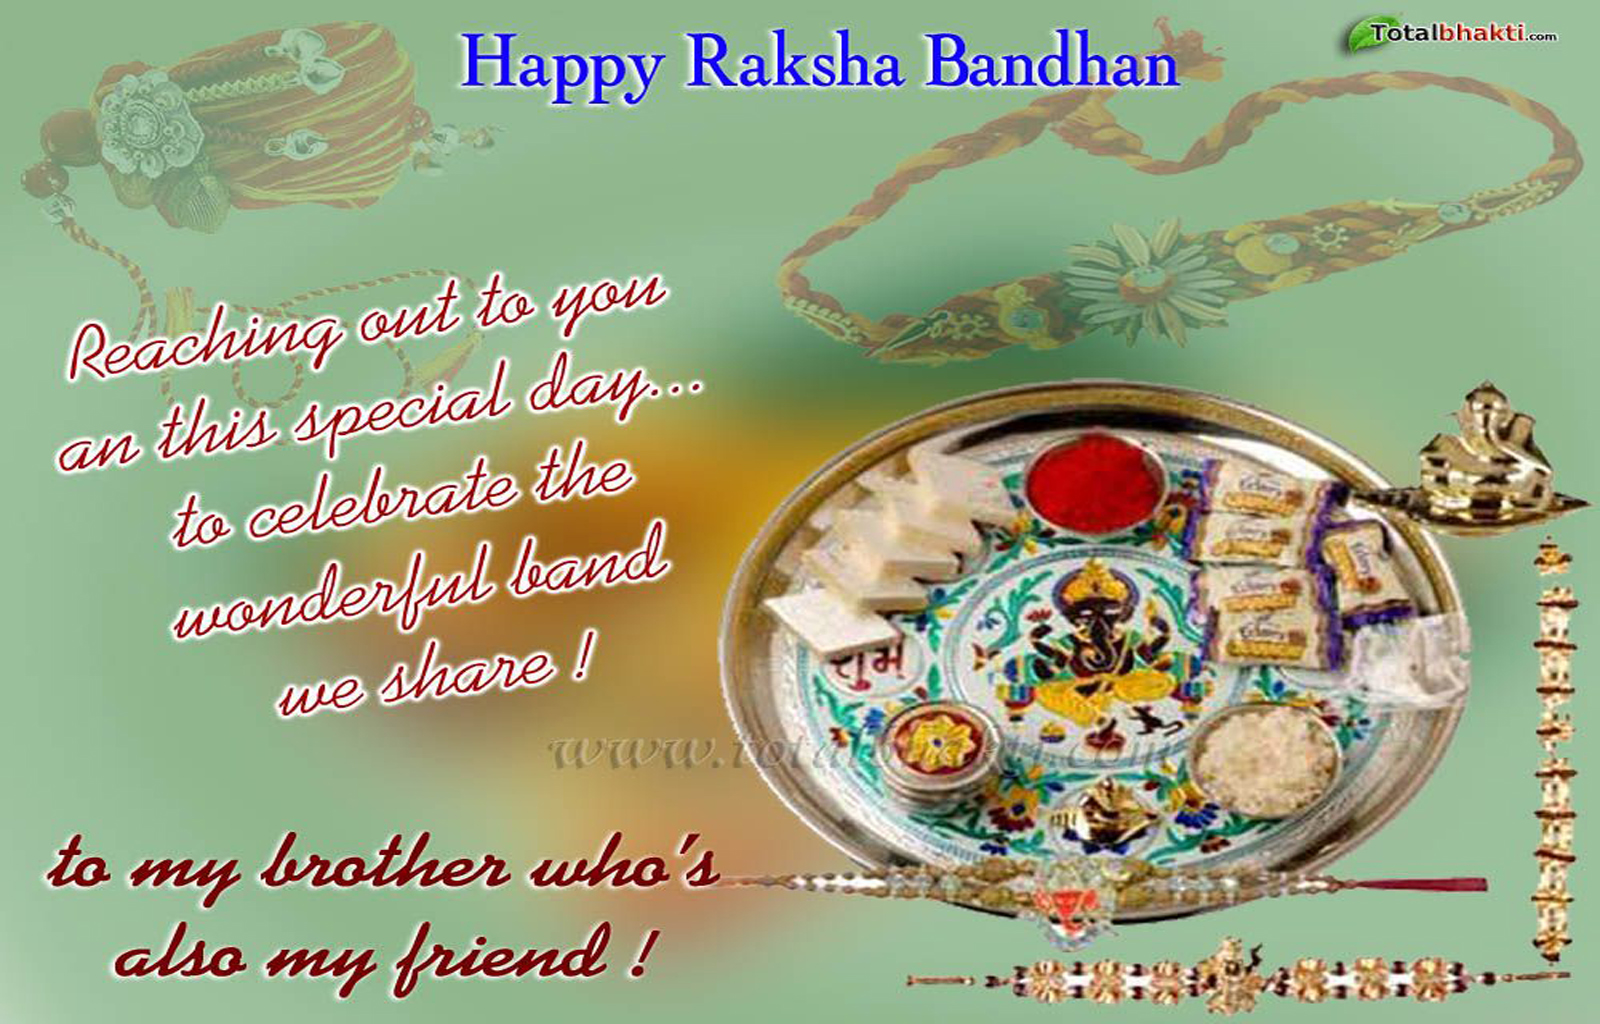 Raksha Bandhan - 27 Video Result(s)